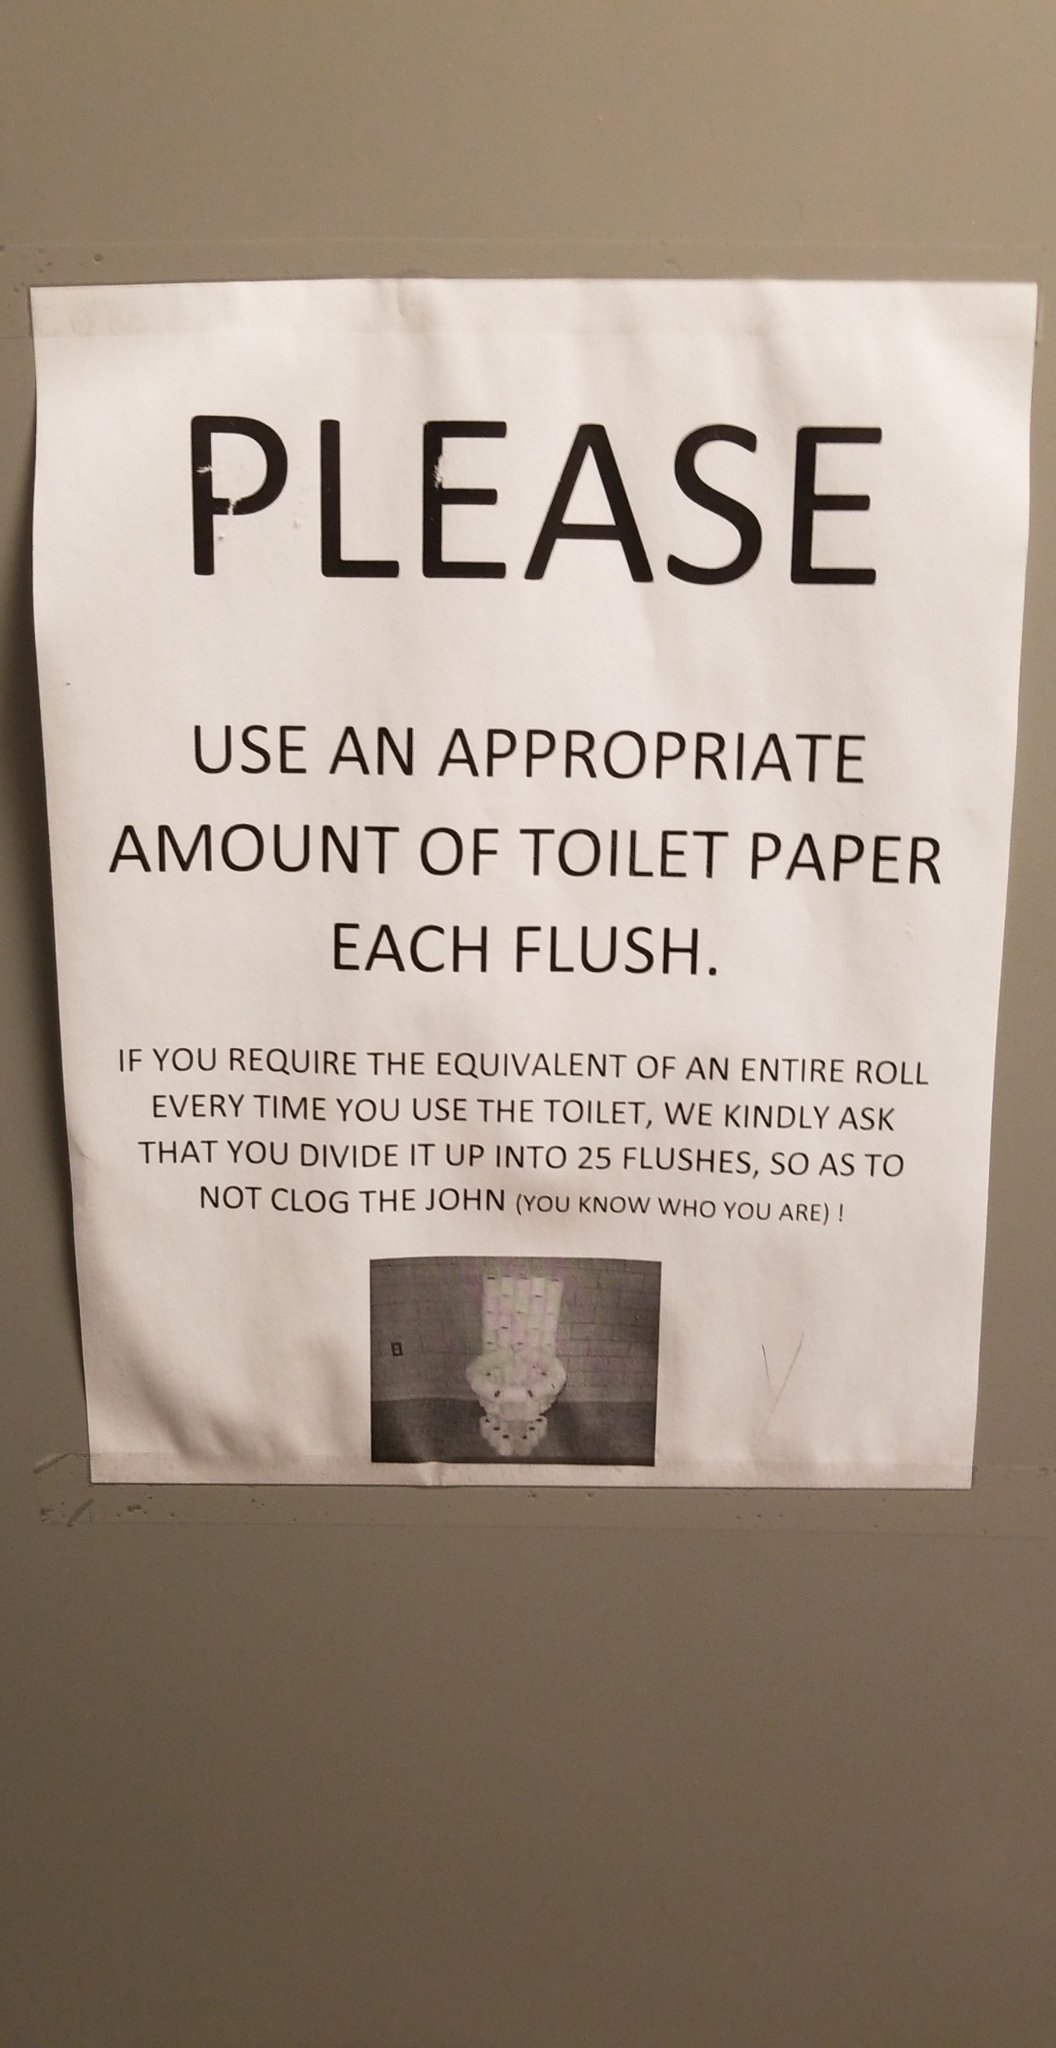 Poopin' at a local business - meme